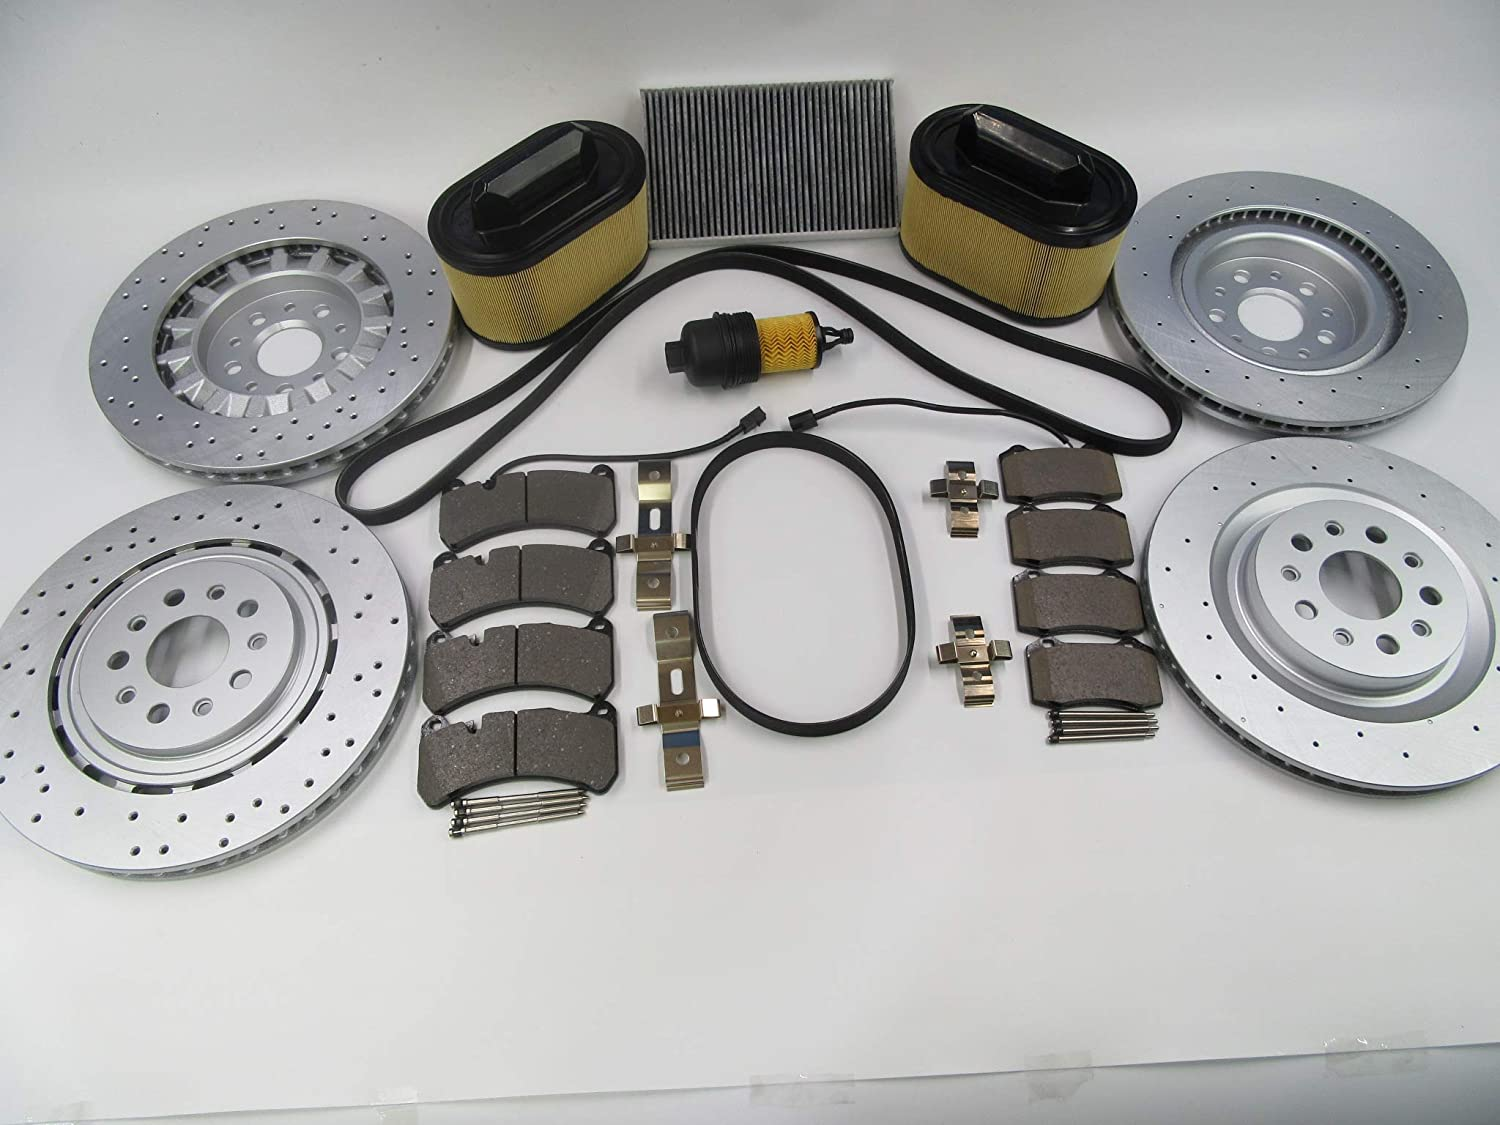 TopEuro replacement Max 66% OFF brake pads rotors Direct store filters belts service kit